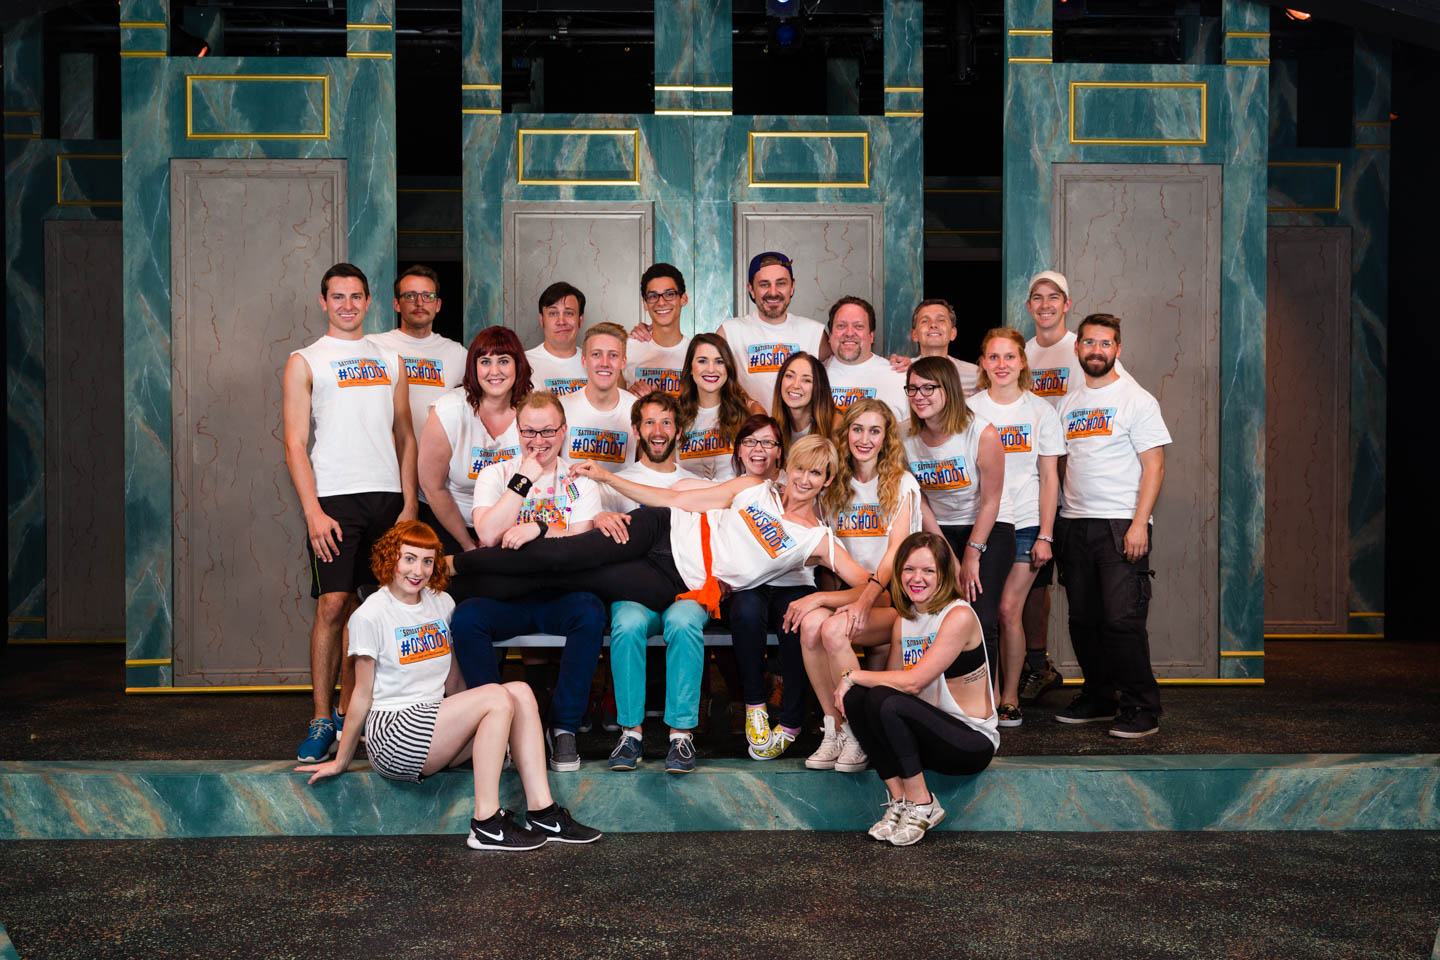 Salt Lake Acting Company Group and Team Photo